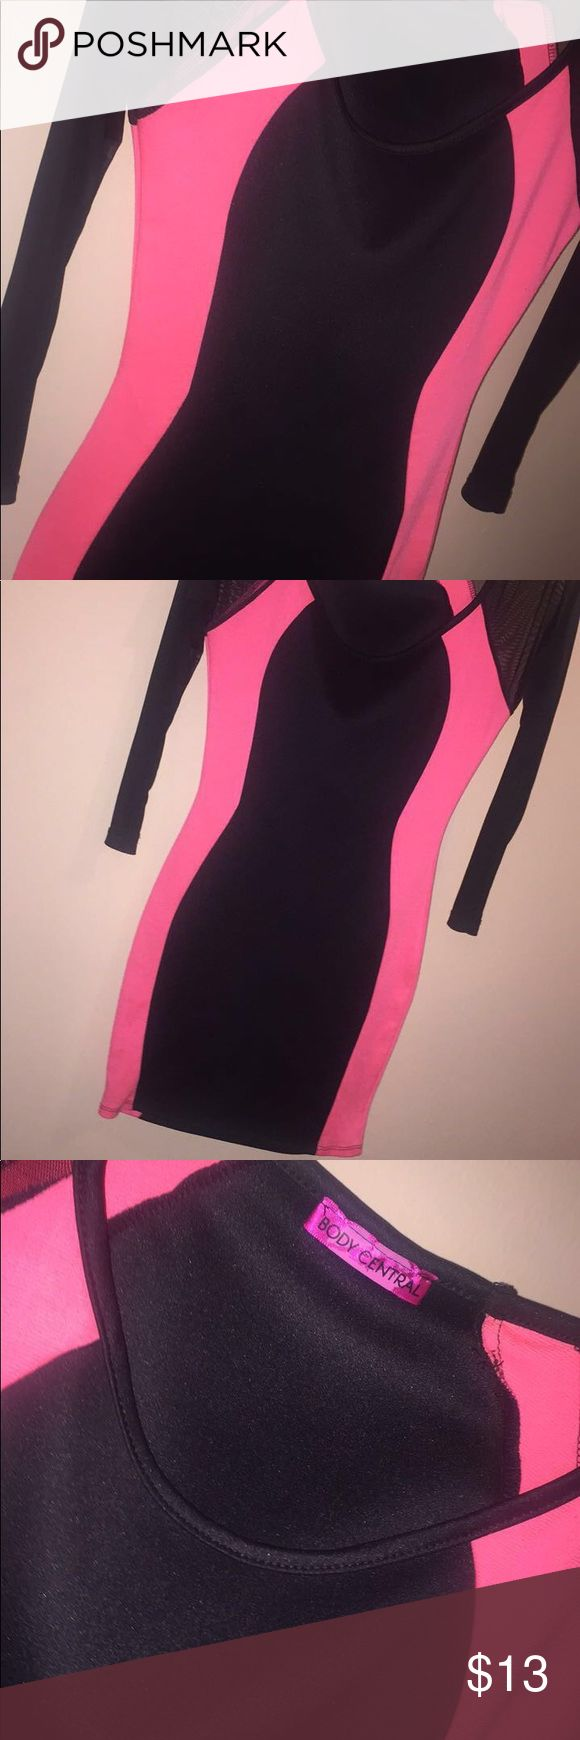 Form Fitting Body Central Dress Pink and Black form fitting dress Body Central Dresses Midi